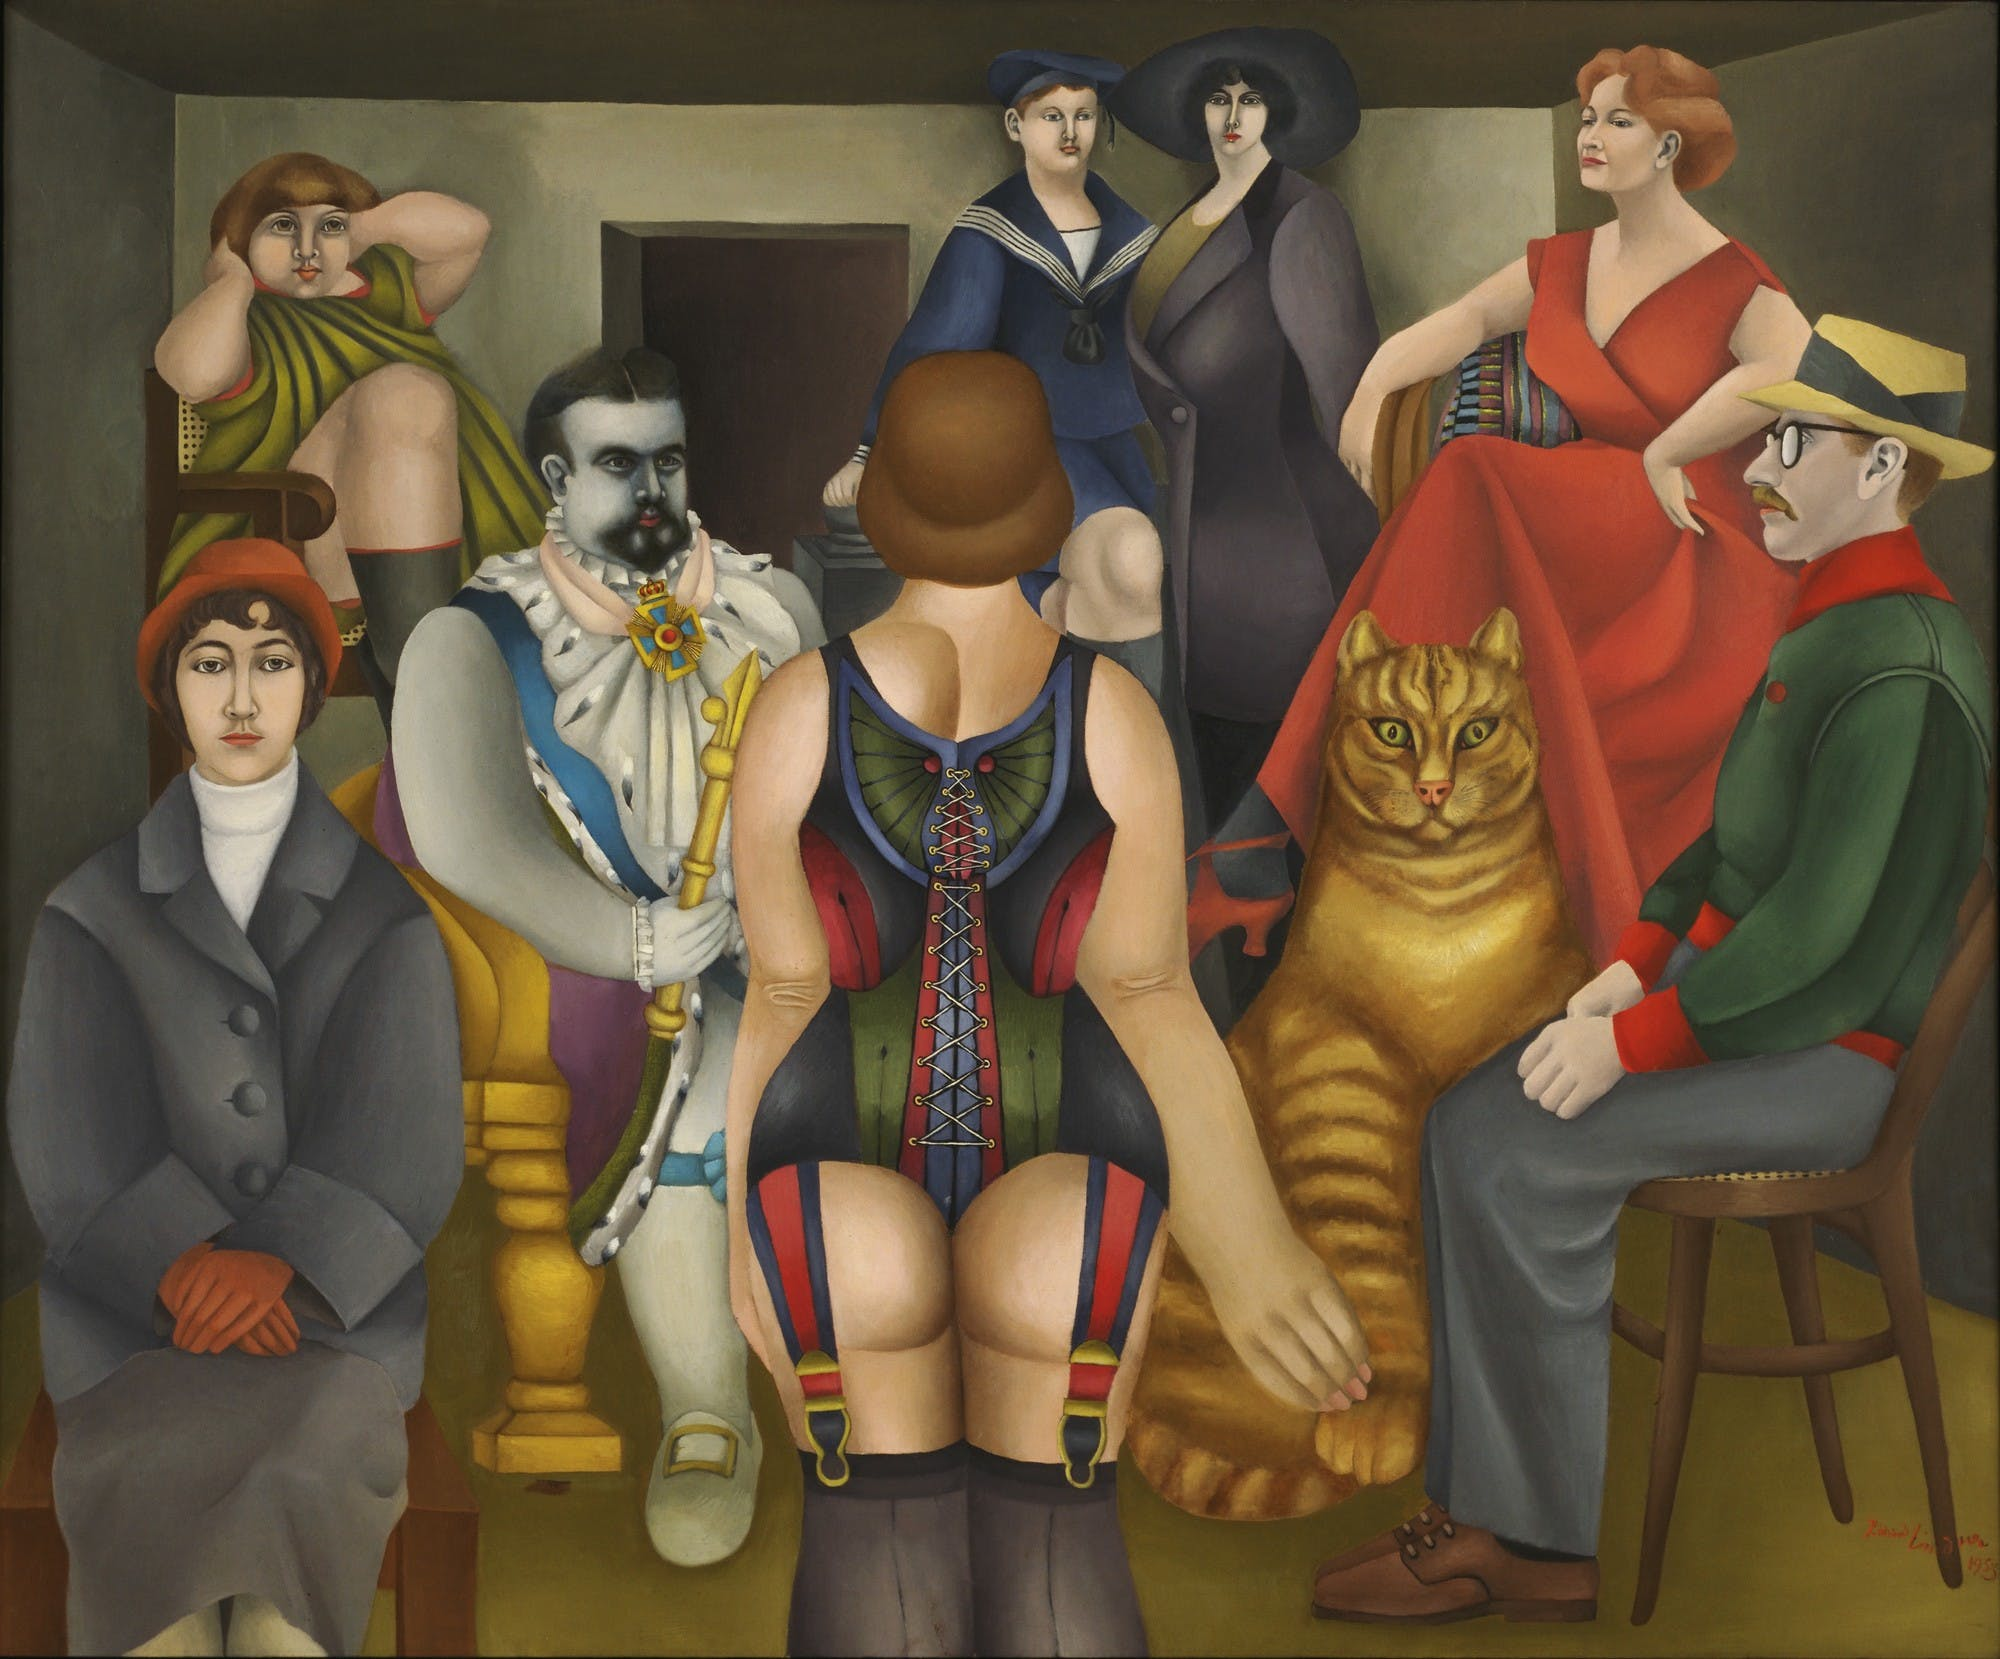 Richard Lindner's Artistic Panorama of the Unruly 60s and 70s of the 20th Century